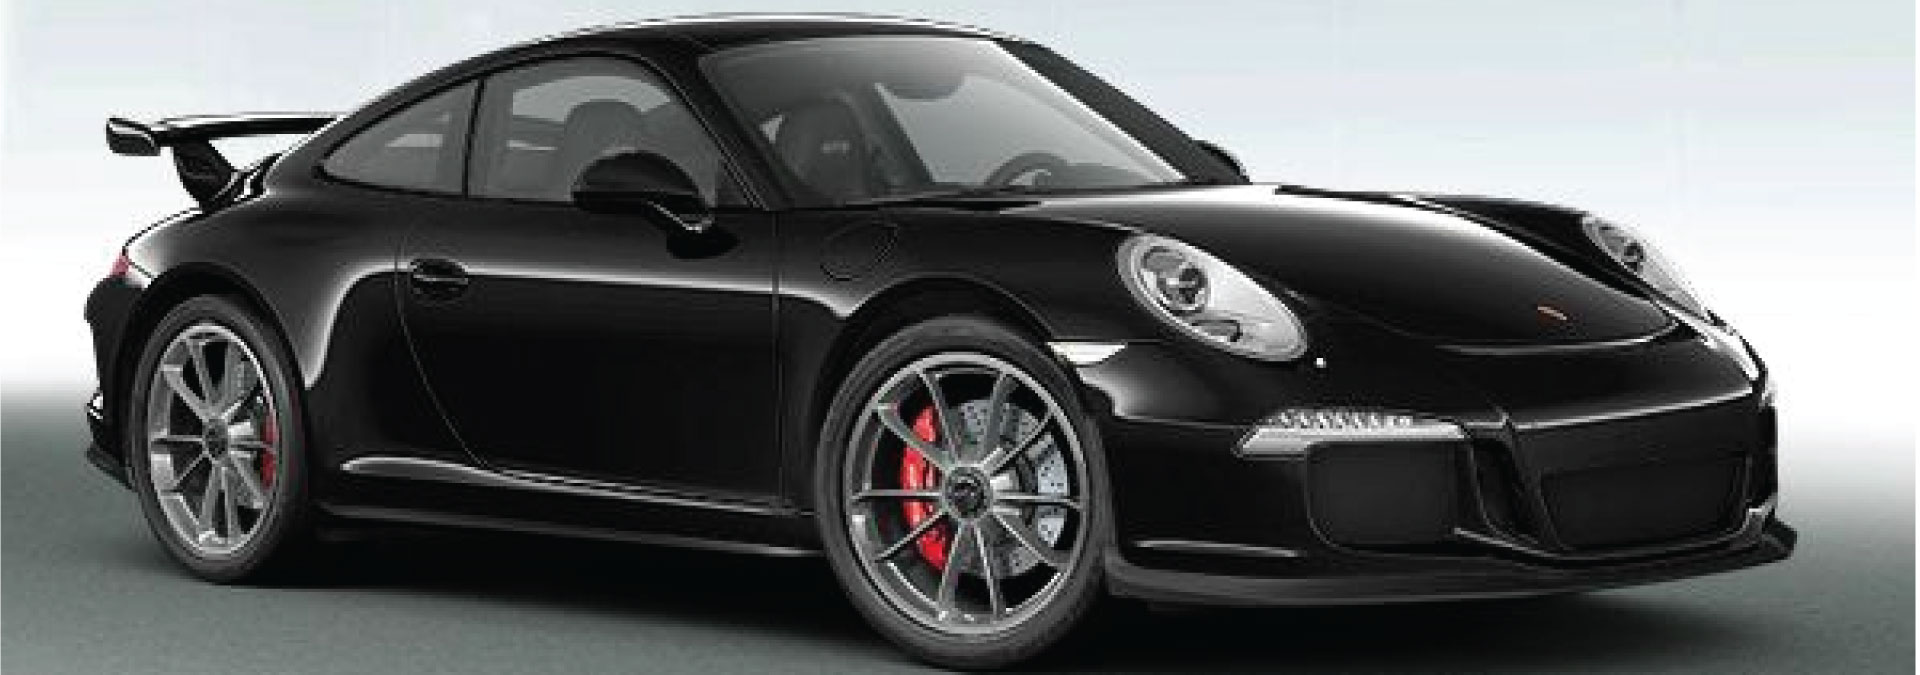 Porsche tuning and programming